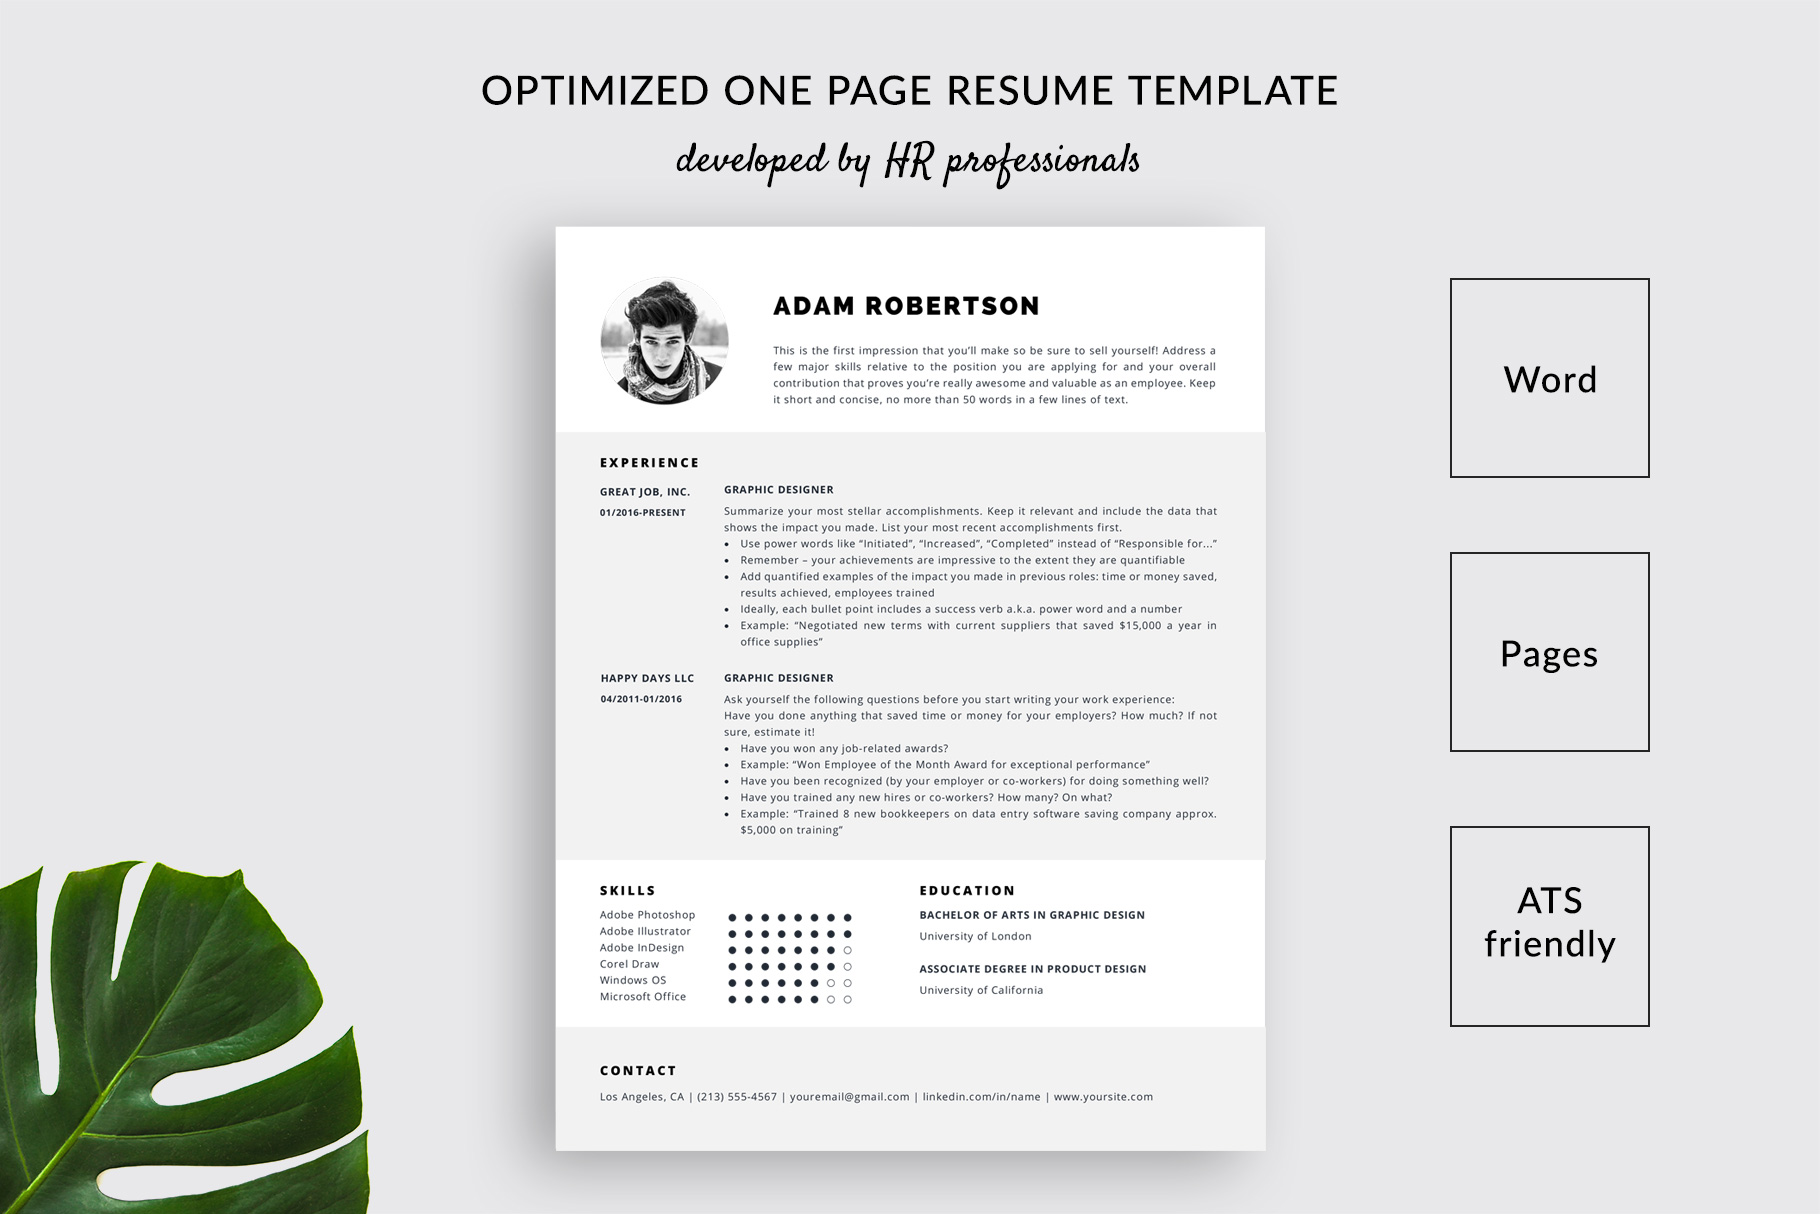 resume template and cover letter adam free templates ats friendly one templatehippo Resume Free Resume Templates Ats Friendly